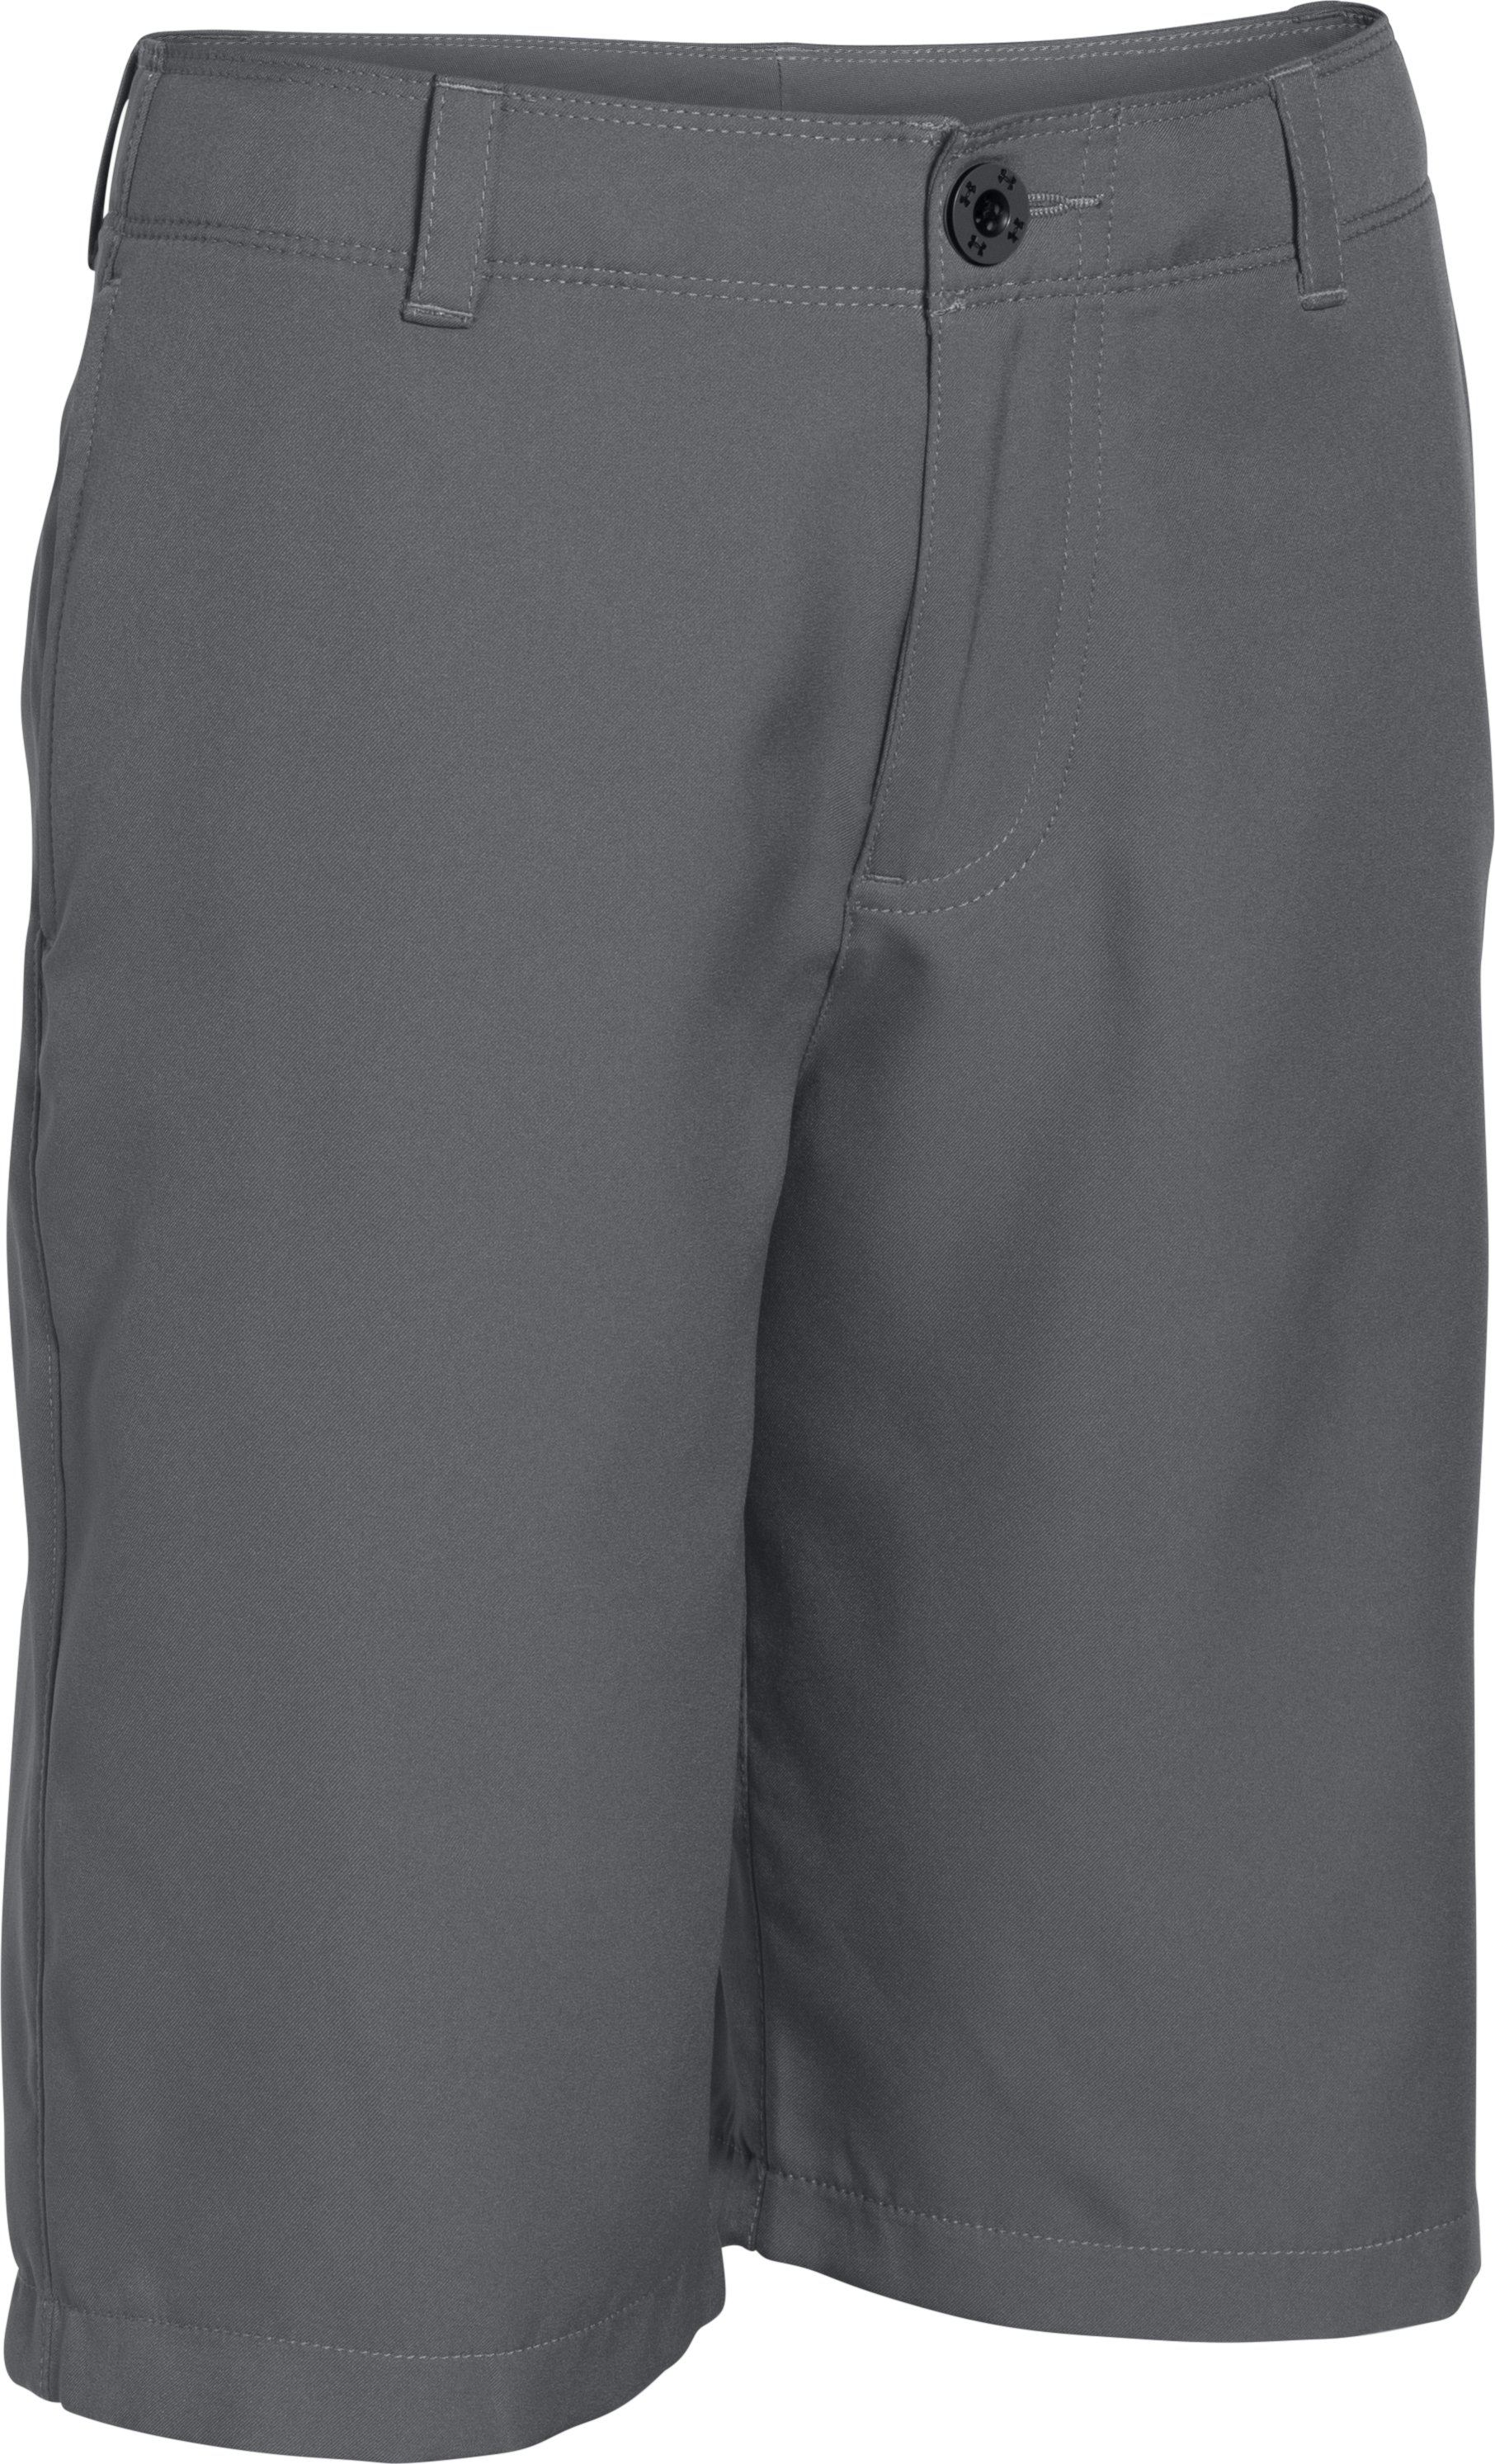 Boys' UA Medal Play Golf Shorts , Graphite